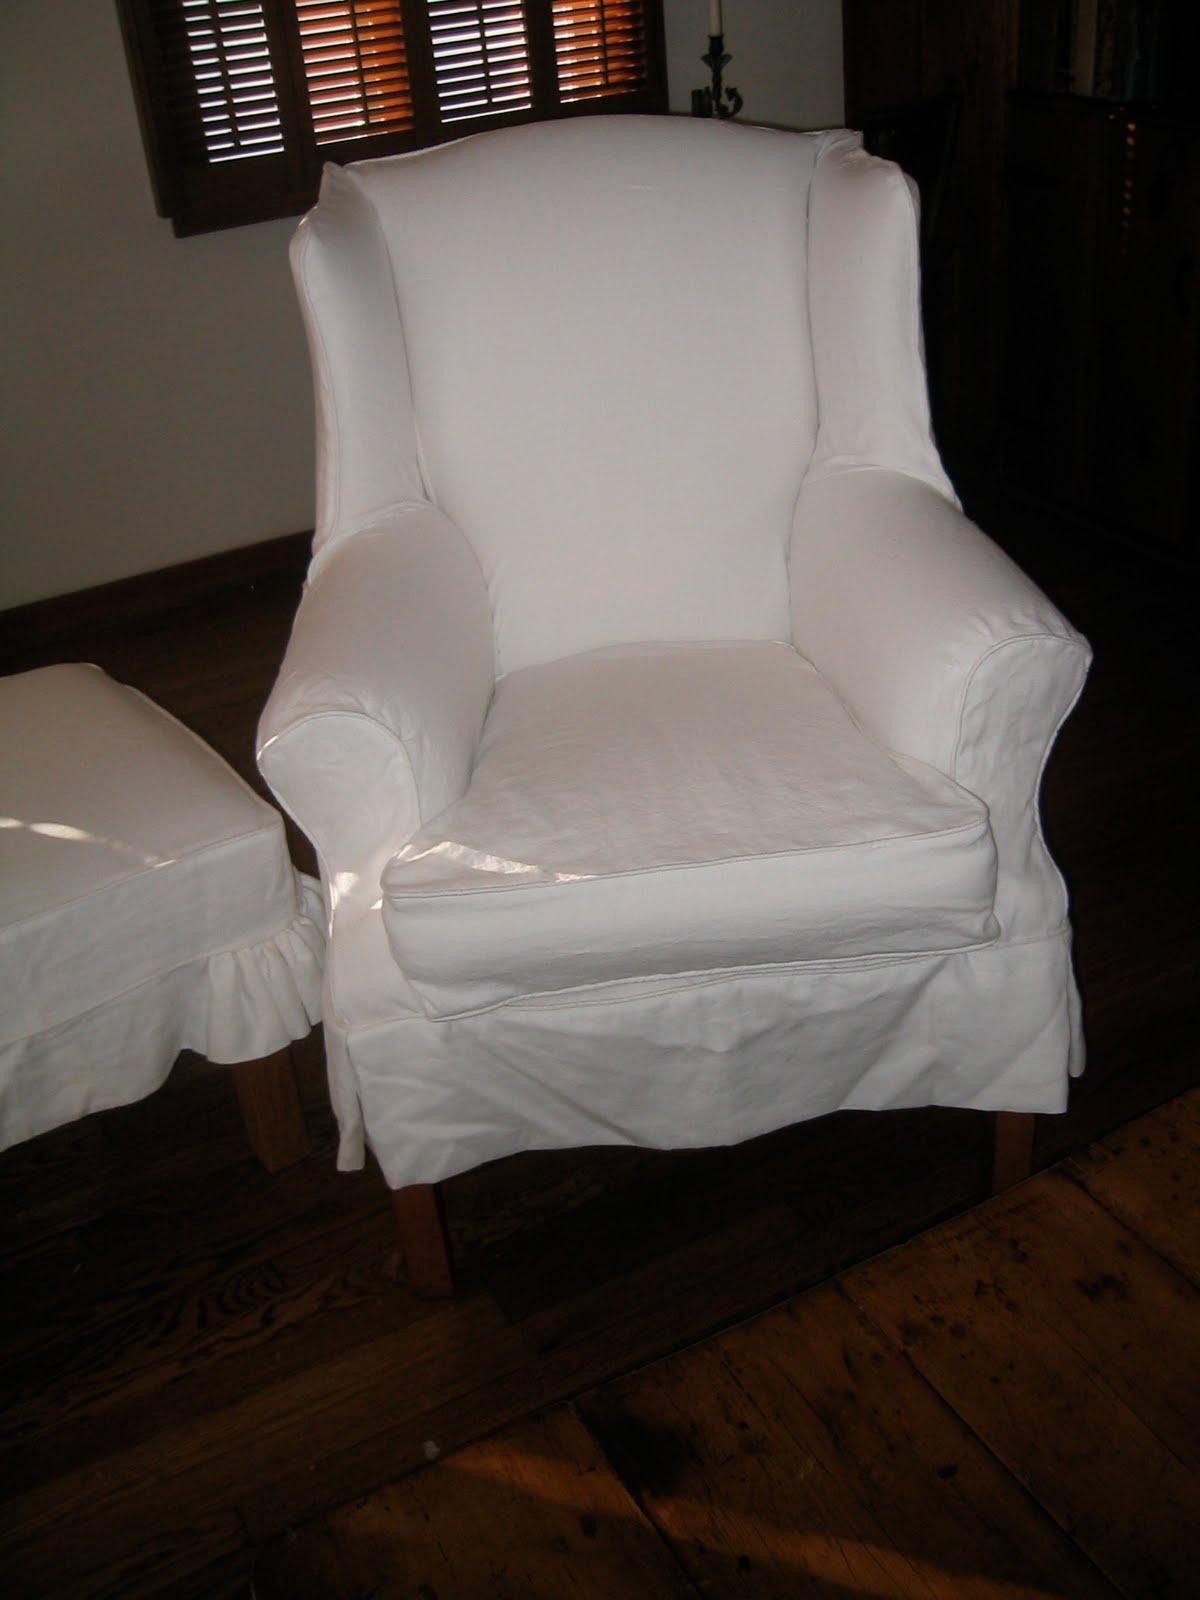 Red Wingback Chair Slipcover Racing Simulator Hydraulic Uk A Little Of This That And The Other White Linen Slipcovers